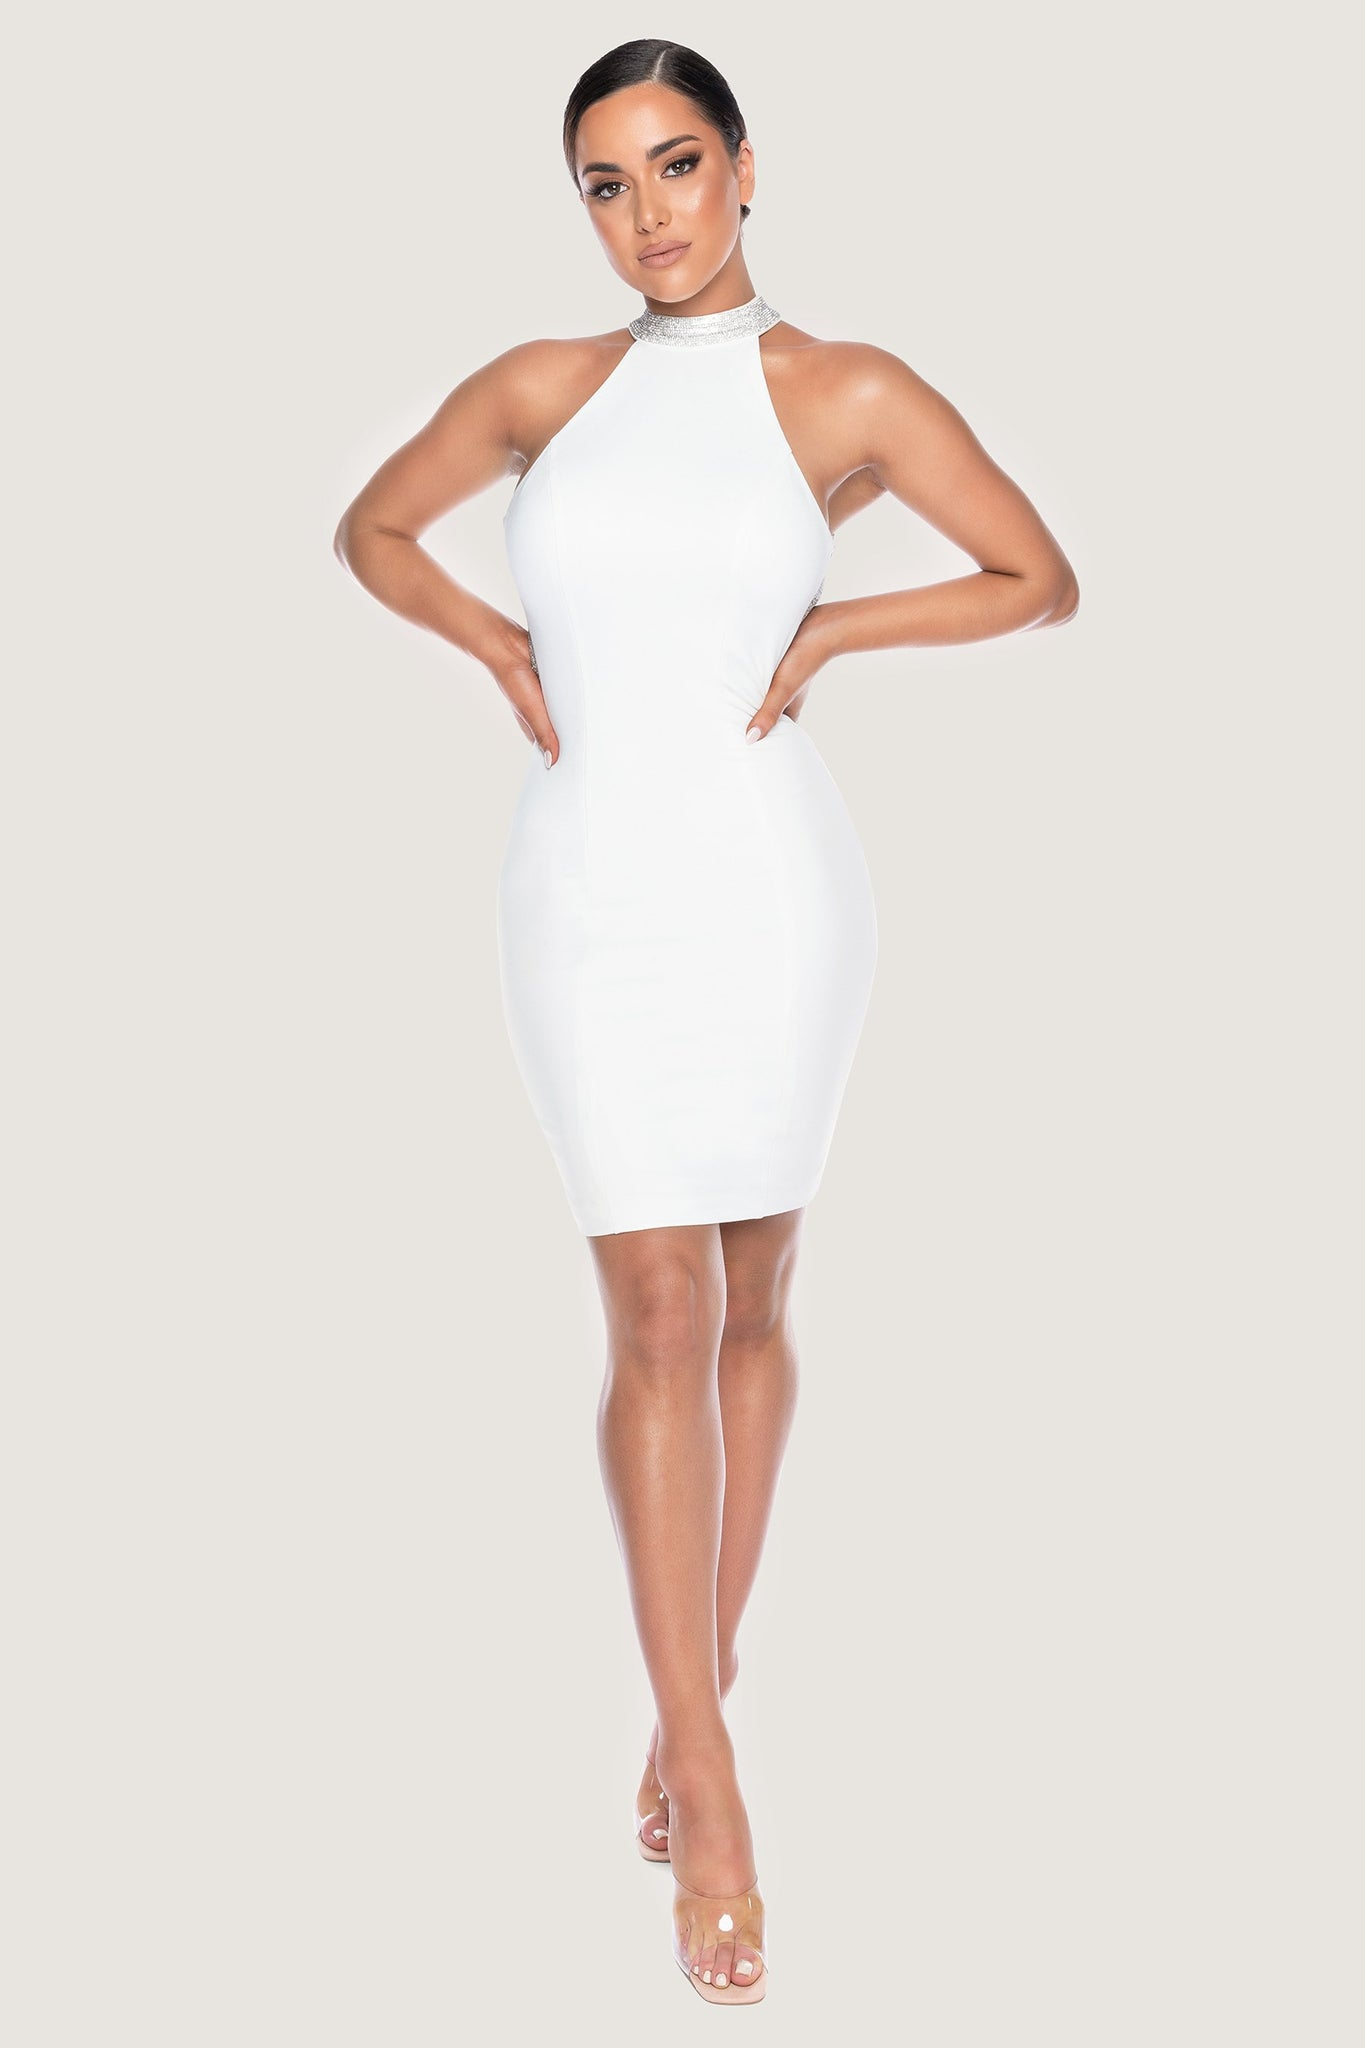 Stephanie Diamante Back Mini Dress - White - MESHKI